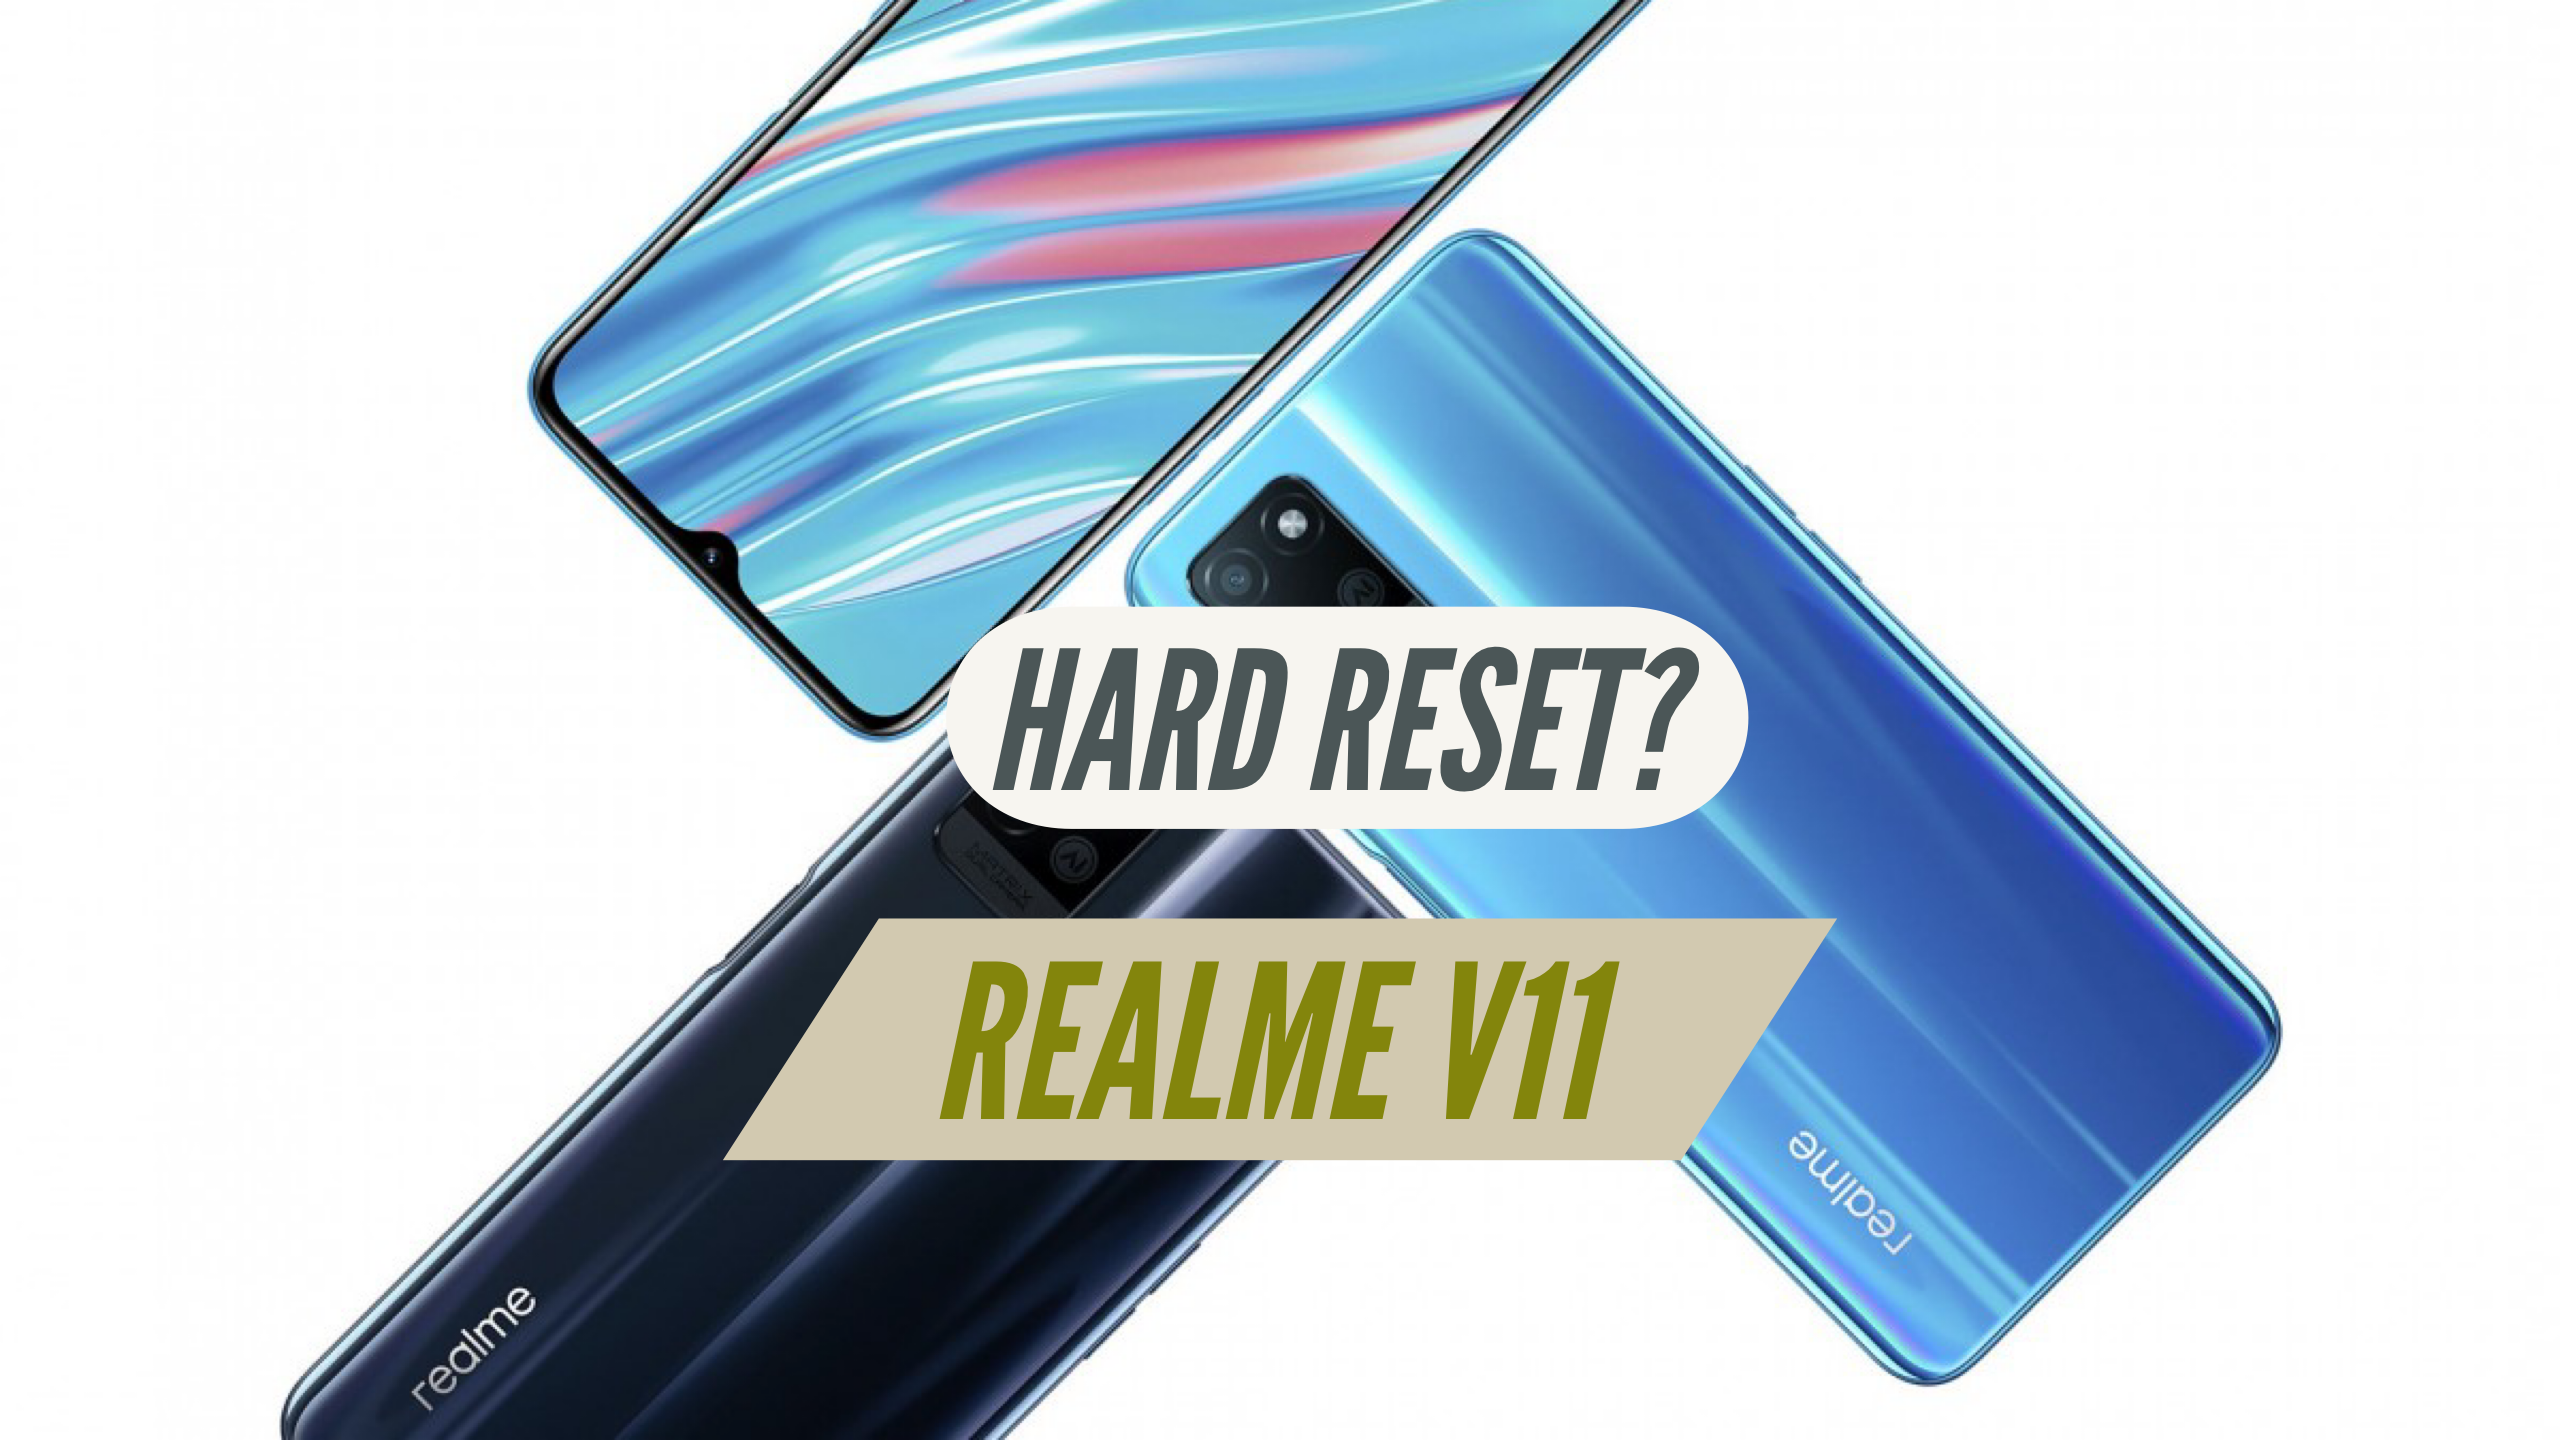 How to Hard Reset Realme V11? ANDROID QUESTIONS